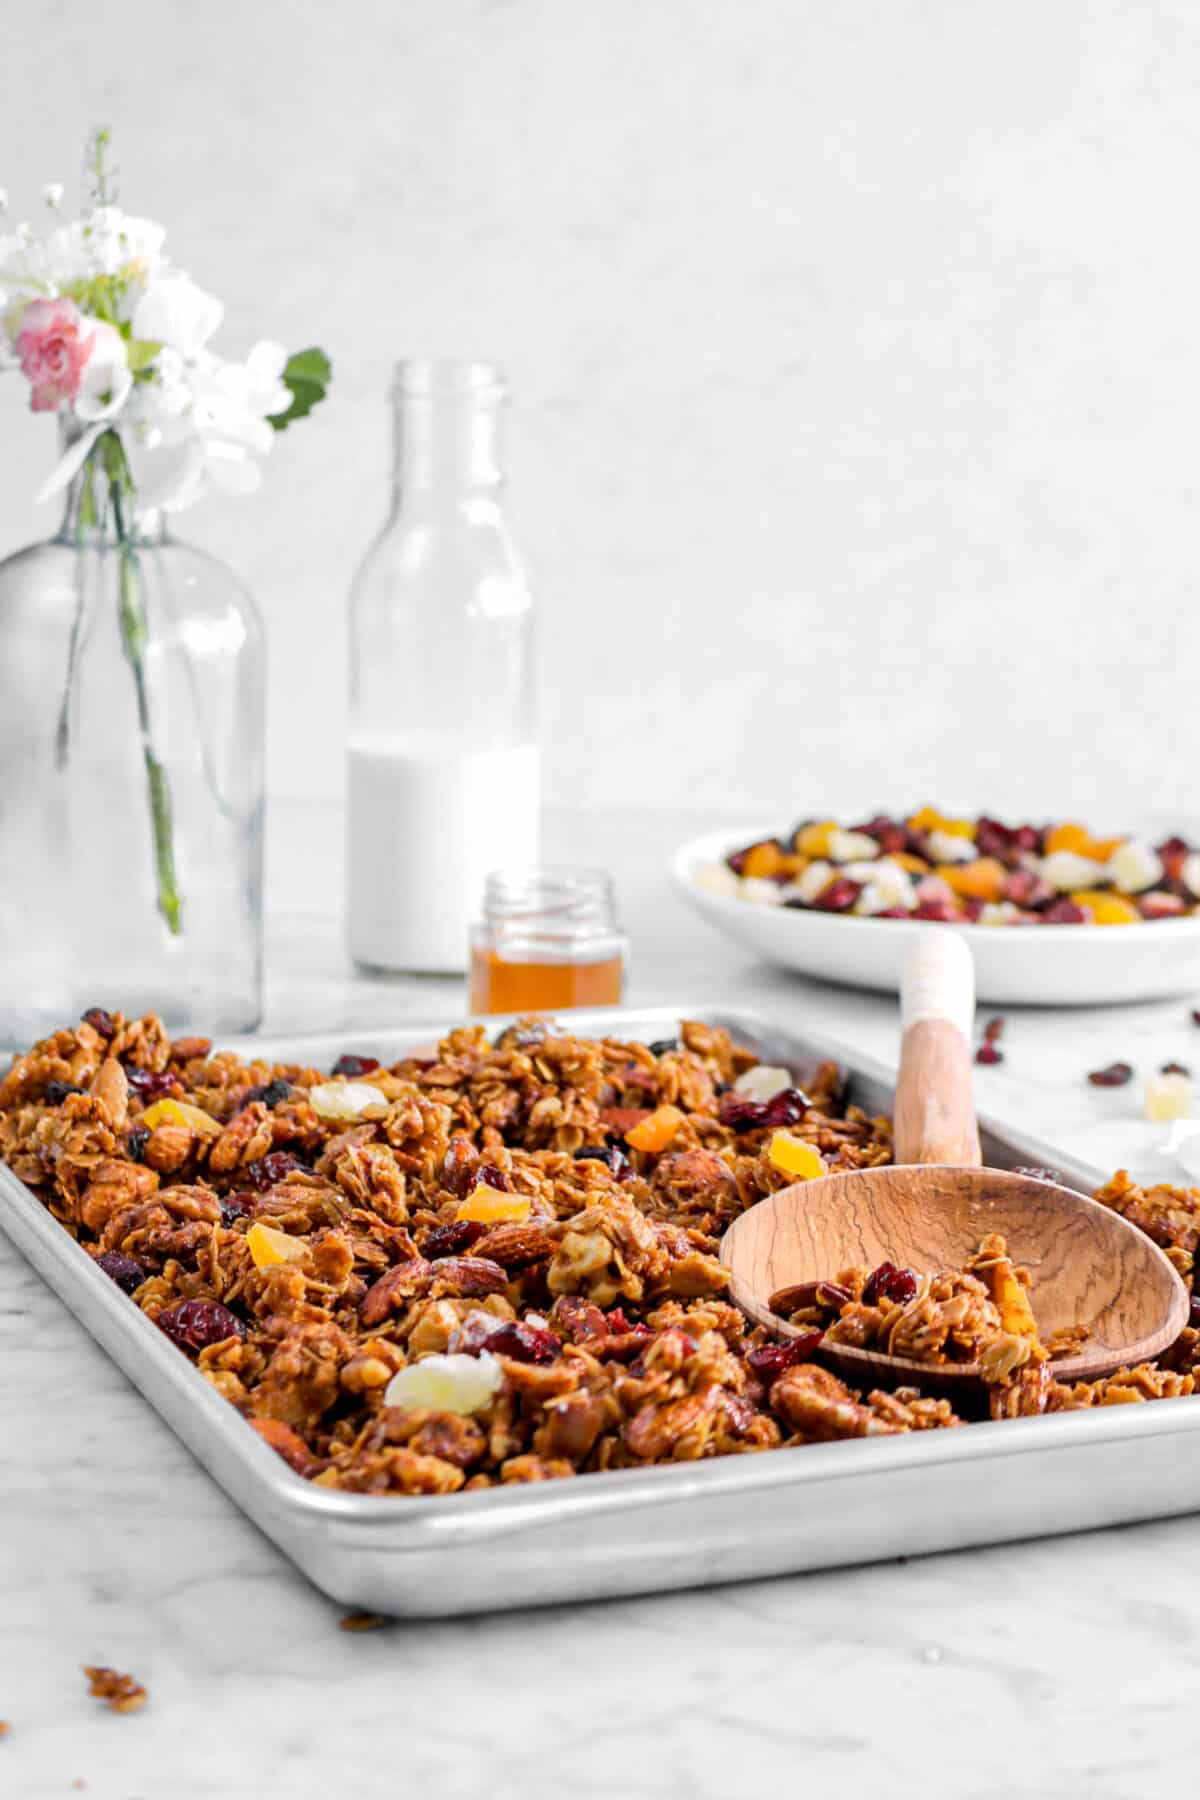 sheet pan full of granola with wooden spoon, flowers, honey jar, glass of milk, and dried fruit bowl